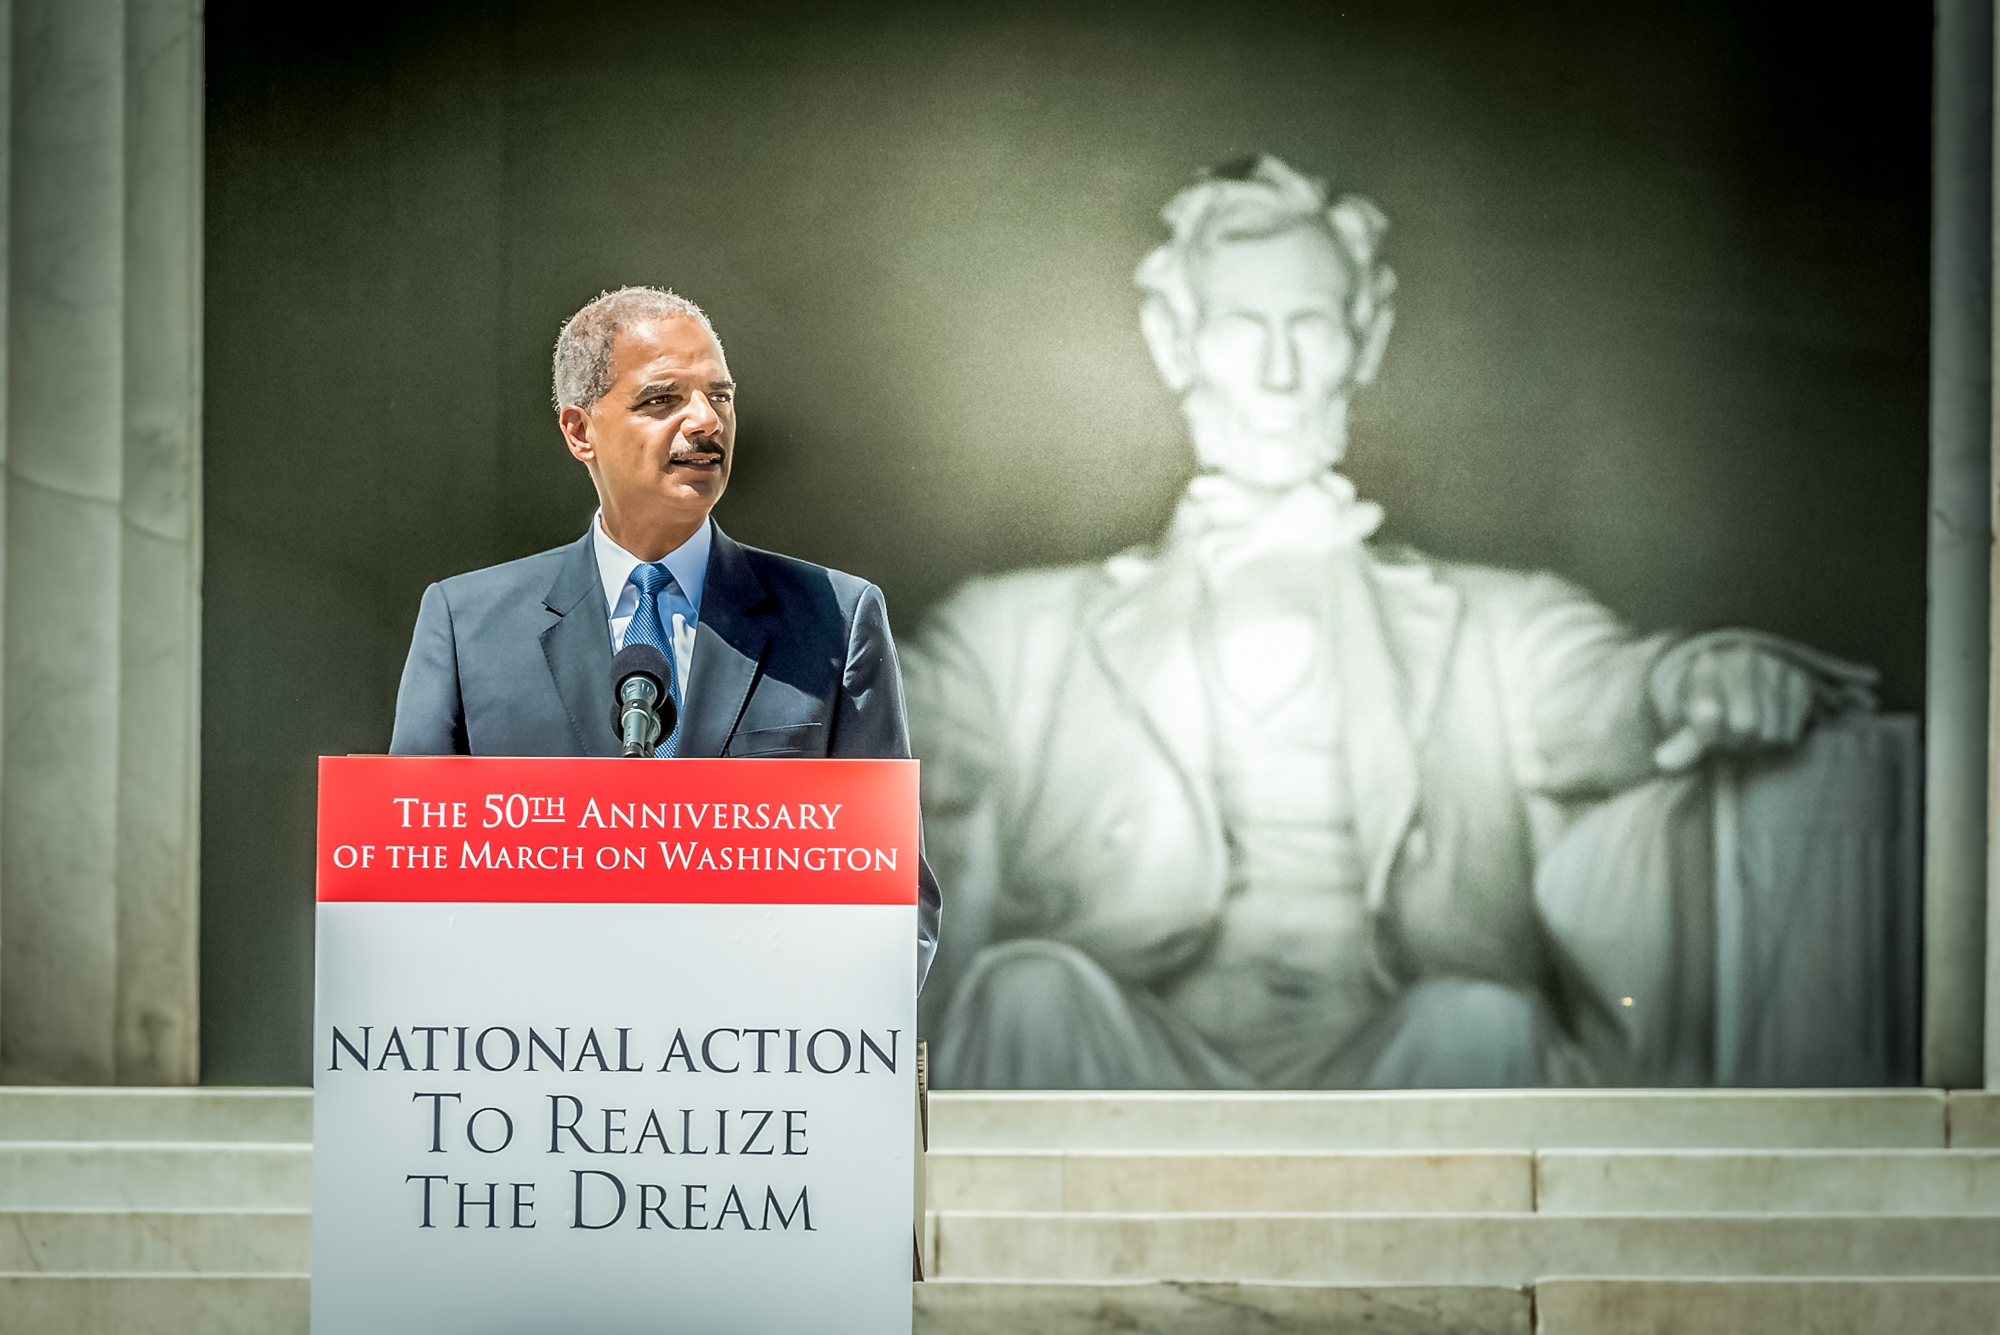 Attorney General Eric Holder speaks at the National Action to Realize the Dream March